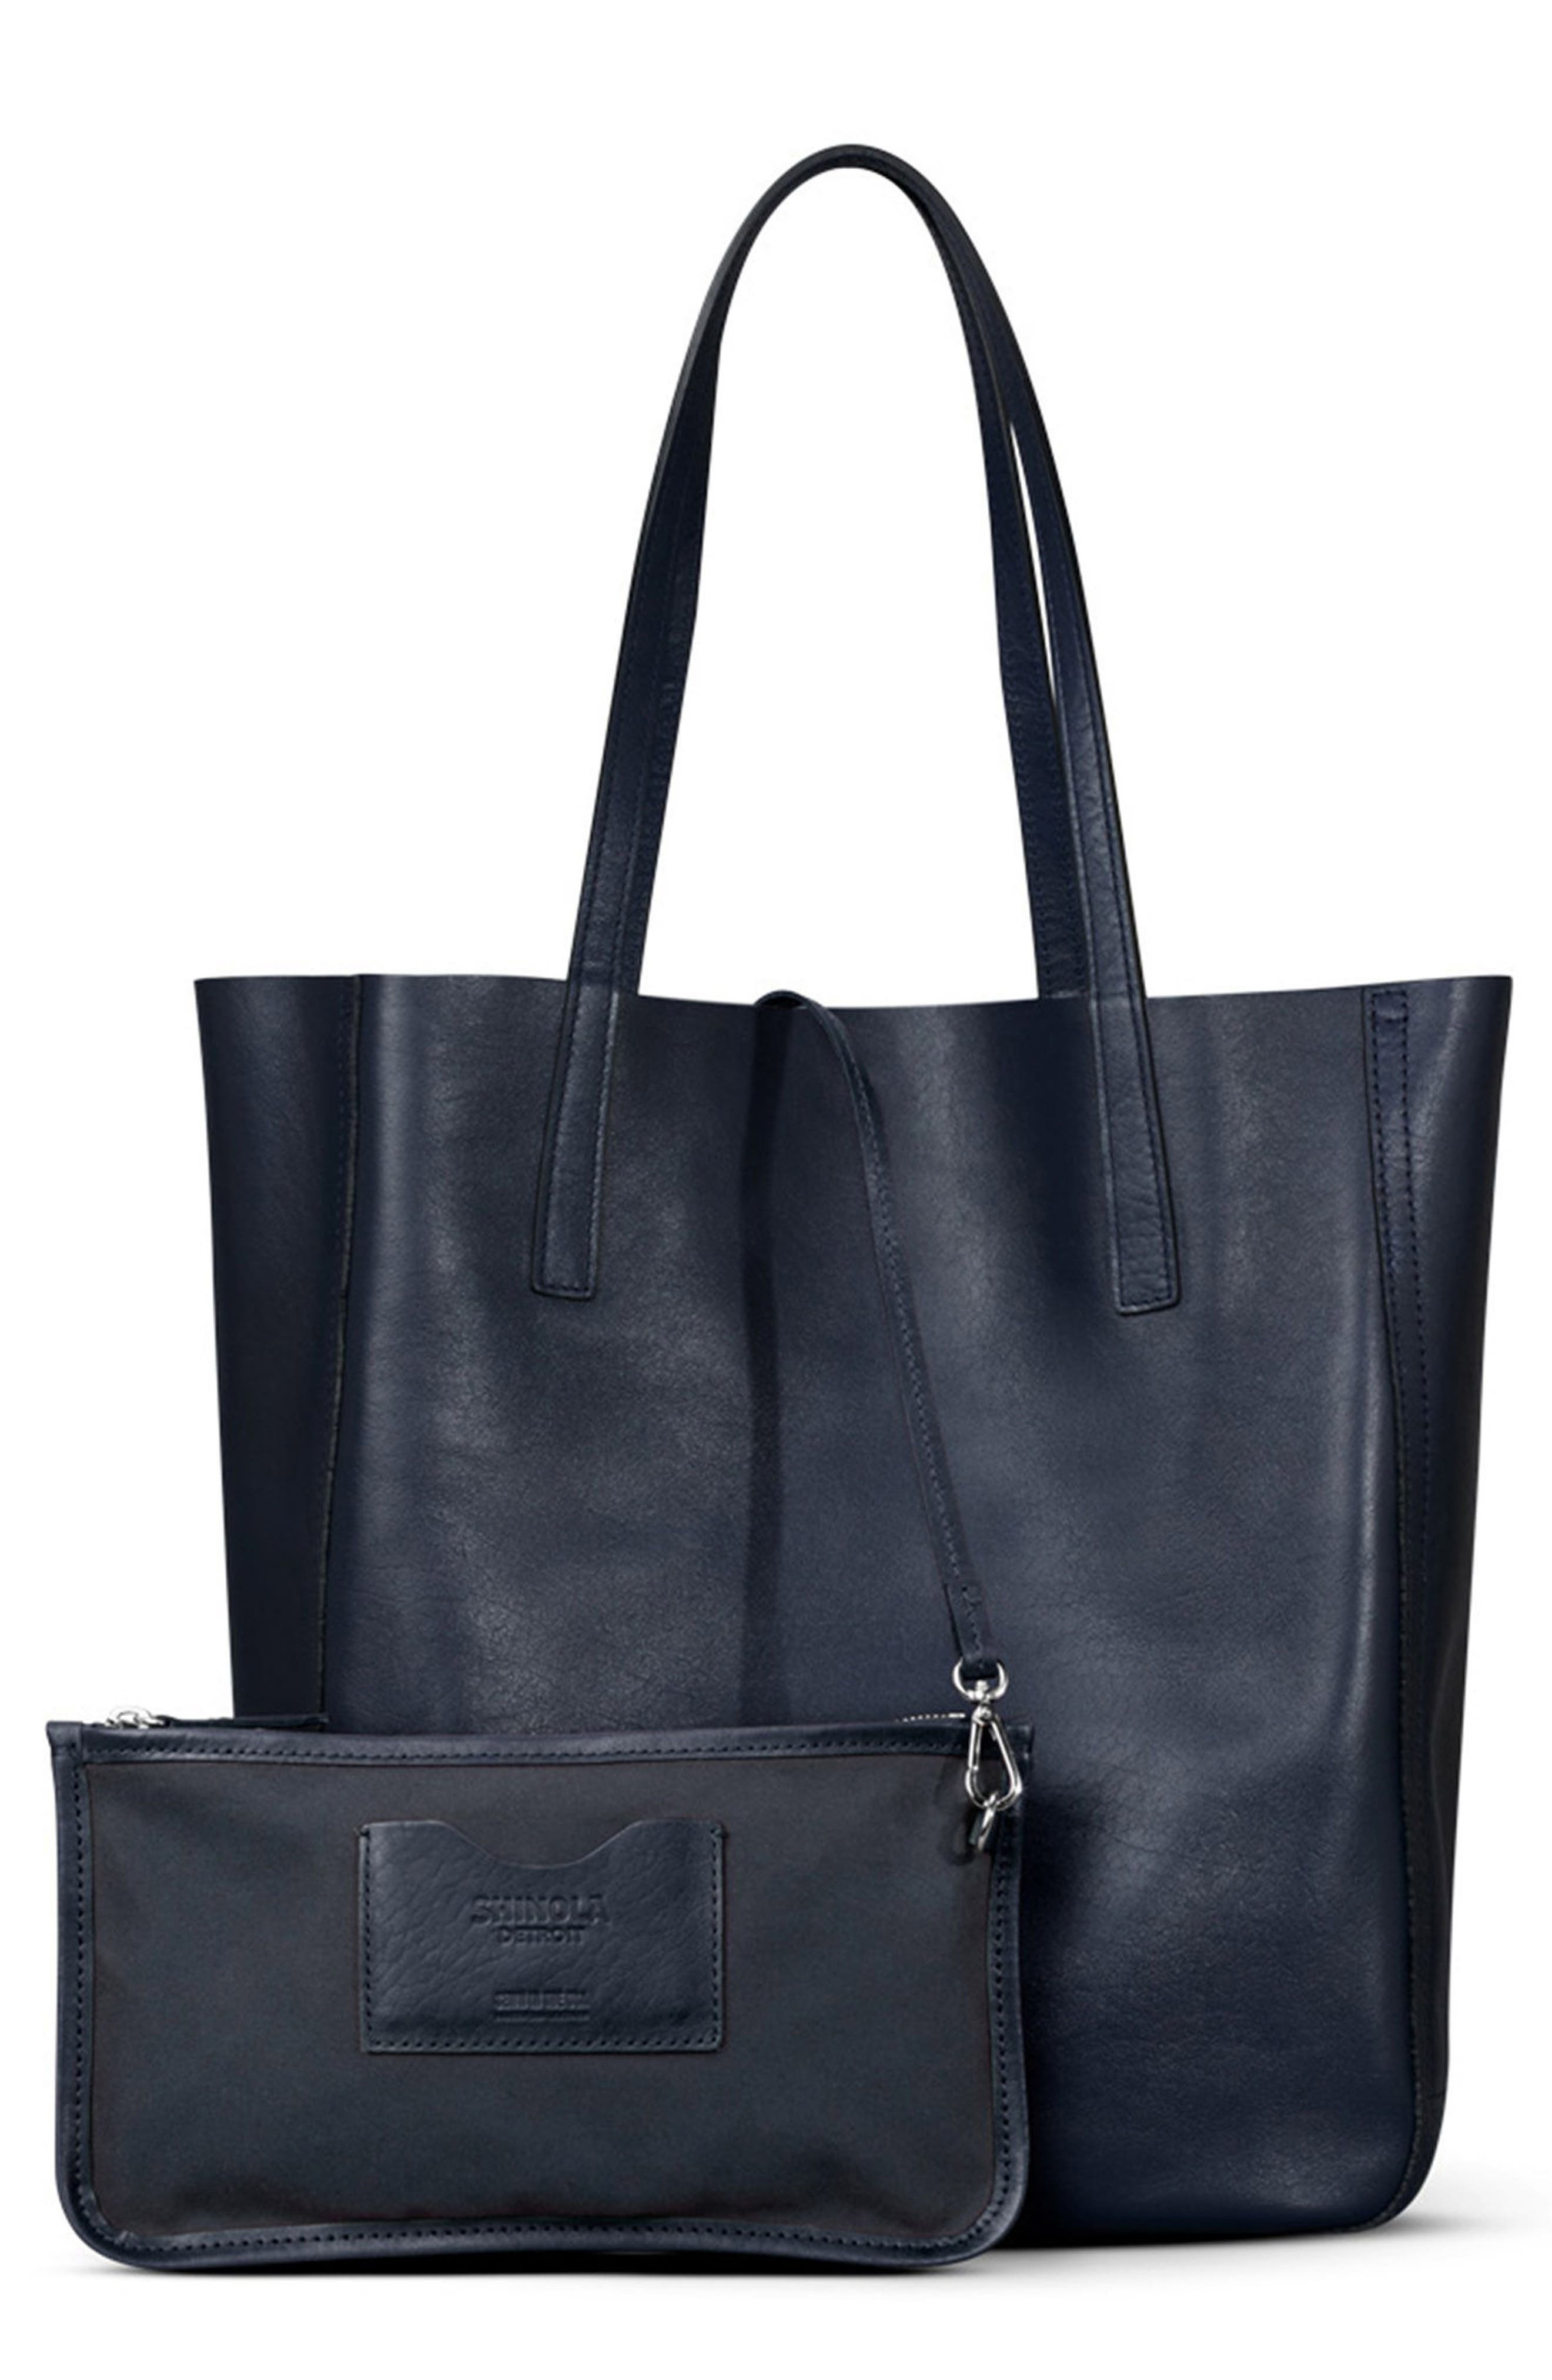 MEDIUM LEATHER SHOPPER - BLUE